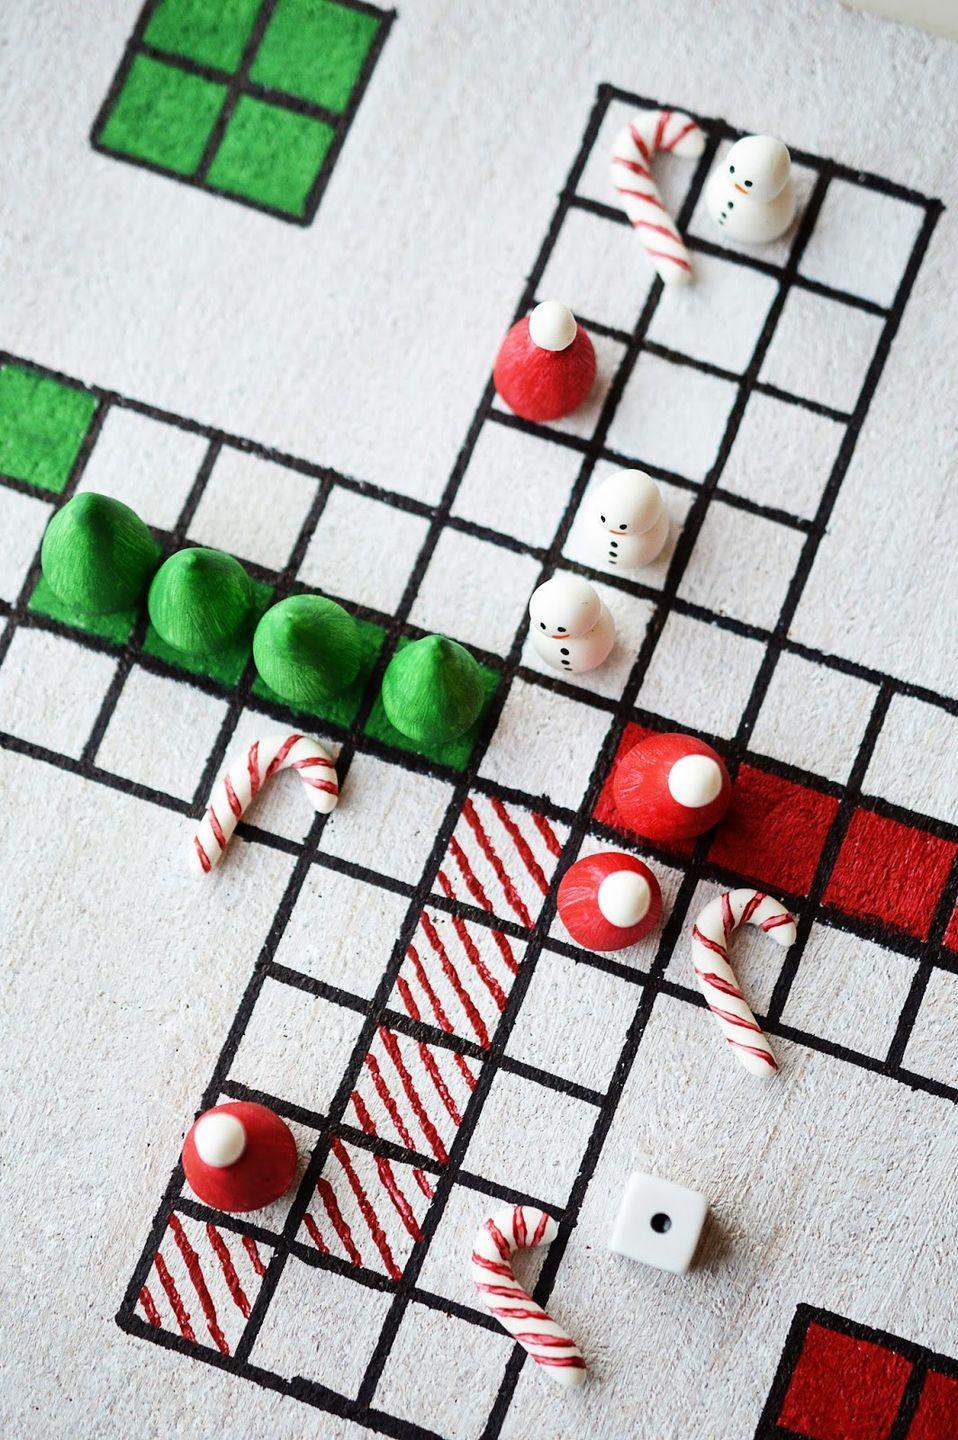 "<p>This blogger went all out and built her own clay game pieces for this festive spin on the classic board game <a href=""https://www.amazon.com/Hasbro-390095-Sorry-Amazon-Exclusive/dp/B00000IWD0?tag=syn-yahoo-20&ascsubtag=%5Bartid%7C2140.g.35058682%5Bsrc%7Cyahoo-us"" rel=""nofollow noopener"" target=""_blank"" data-ylk=""slk:Sorry!"" class=""link rapid-noclick-resp"">Sorry!</a>. You can just as easily use <a href=""https://www.amazon.com/HERSHEYS-Holiday-Chocolate-Assortment-Cookies/dp/B01JRIZ258/?tag=syn-yahoo-20&ascsubtag=%5Bartid%7C2140.g.35058682%5Bsrc%7Cyahoo-us"" rel=""nofollow noopener"" target=""_blank"" data-ylk=""slk:Christmas Hershey's Kisses"" class=""link rapid-noclick-resp"">Christmas Hershey's Kisses</a> (which conveniently come wrapped in different colors) on your own DIY board.</p><p><a class=""link rapid-noclick-resp"" href=""https://www.amazon.com/HERSHEYS-Holiday-Chocolate-Assortment-Cookies/dp/B01JRIZ258/?tag=syn-yahoo-20&ascsubtag=%5Bartid%7C2140.g.35058682%5Bsrc%7Cyahoo-us"" rel=""nofollow noopener"" target=""_blank"" data-ylk=""slk:SHOP HERSHEY'S KISSES"">SHOP HERSHEY'S KISSES</a><br></p><p><em><a href=""http://mottesblog.blogspot.com/2015/12/diy-christmas-board-game.html"" rel=""nofollow noopener"" target=""_blank"" data-ylk=""slk:Get the tutorial at Motte »"" class=""link rapid-noclick-resp"">Get the tutorial at Motte »</a></em><br></p>"